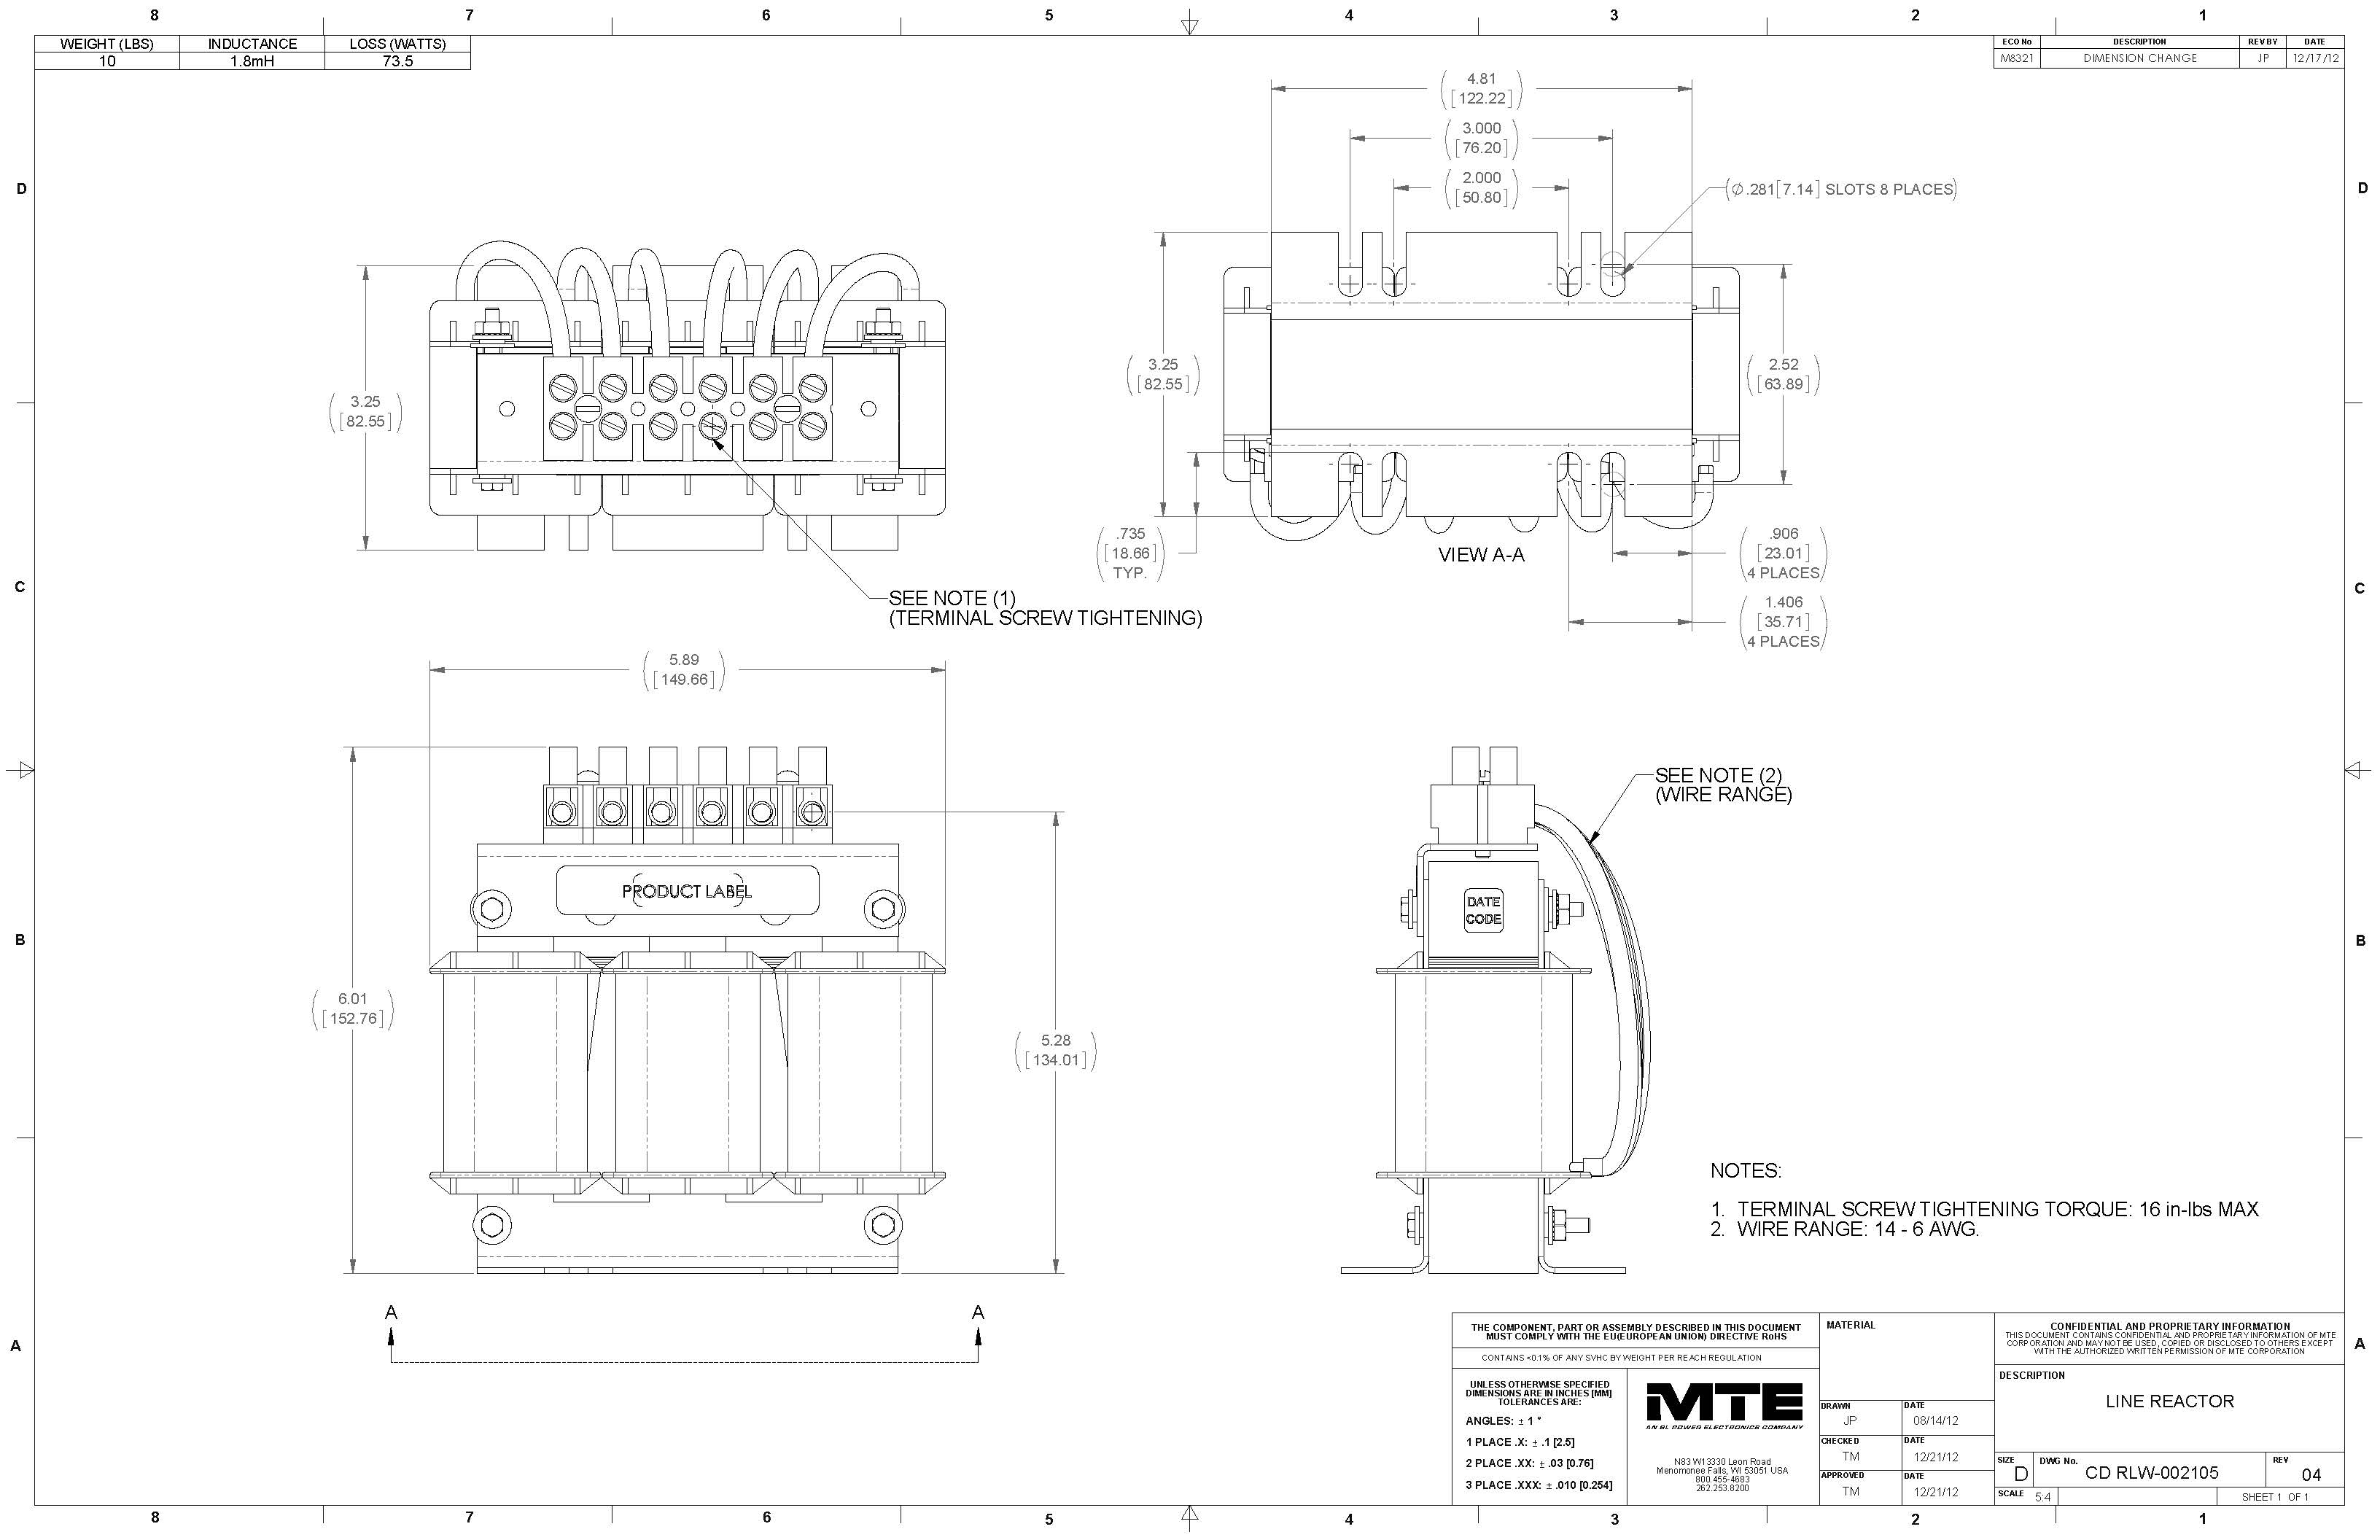 Image of an MTE Reactor RLW-002105